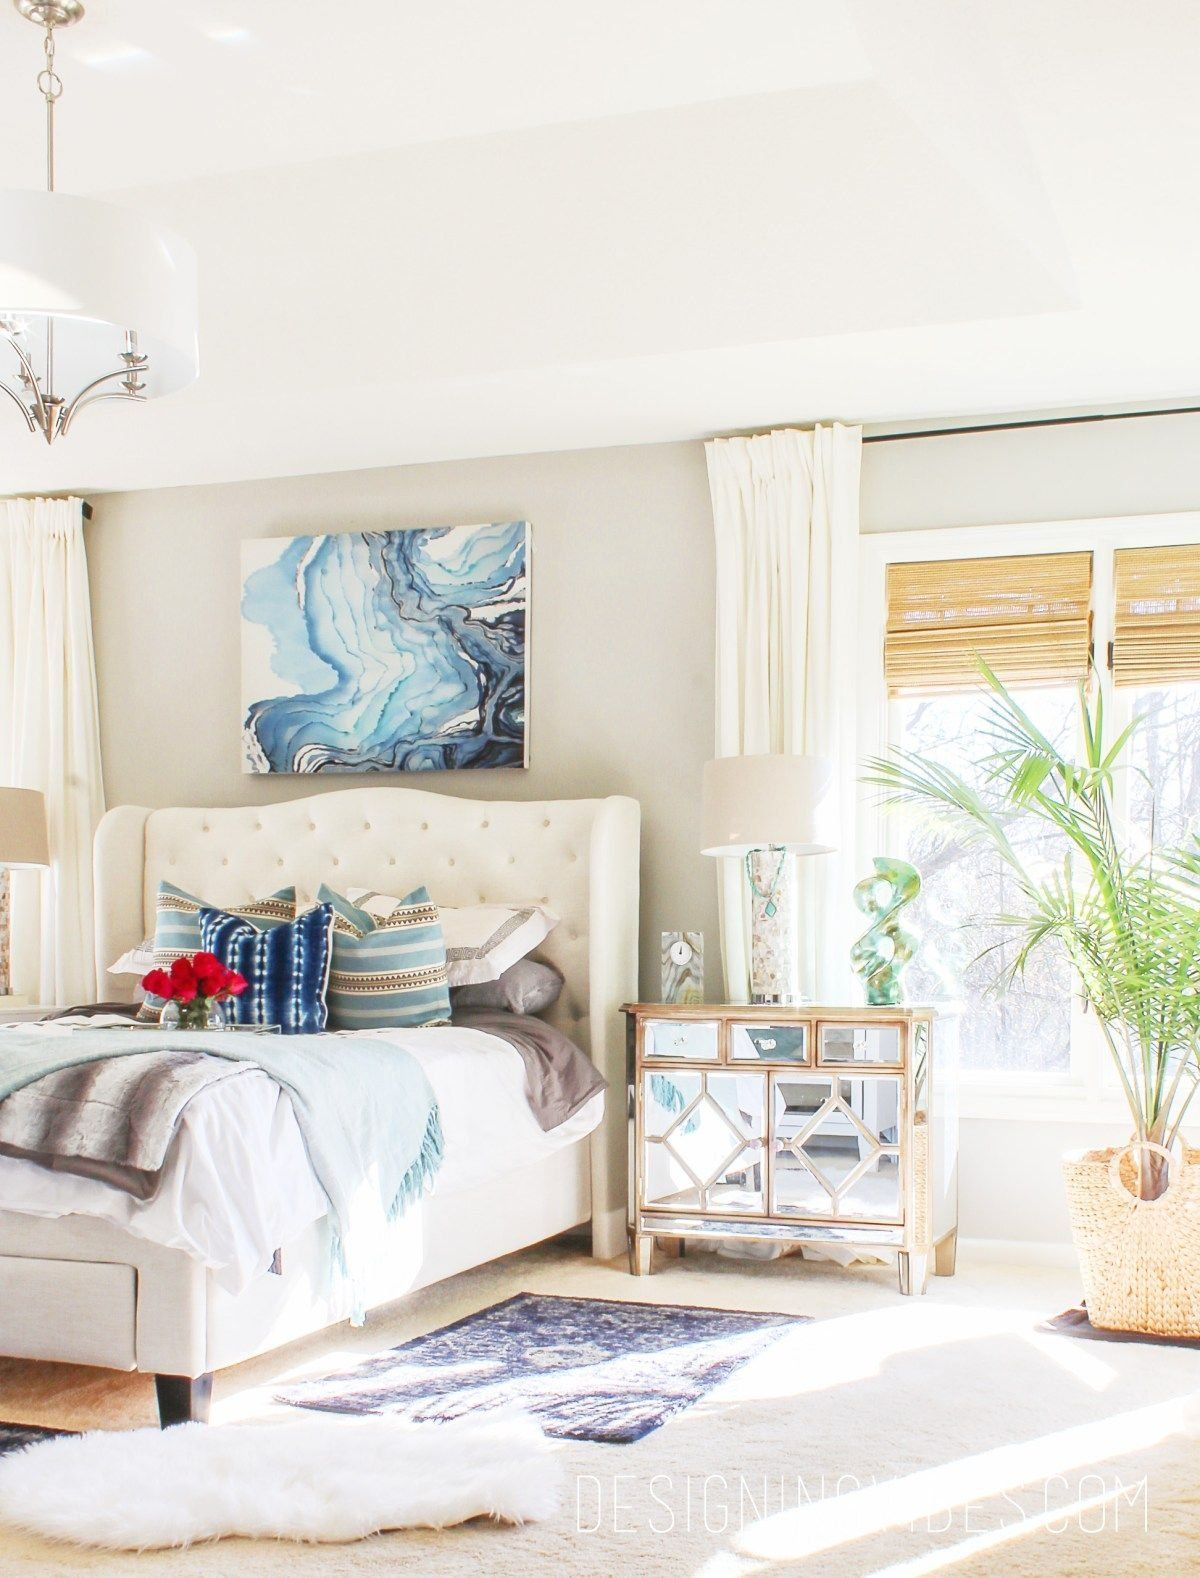 Modern Farmhouse Bedroom Refresh on a Budget | 1000 in ... on Bohemian Bedroom Ideas On A Budget  id=13727